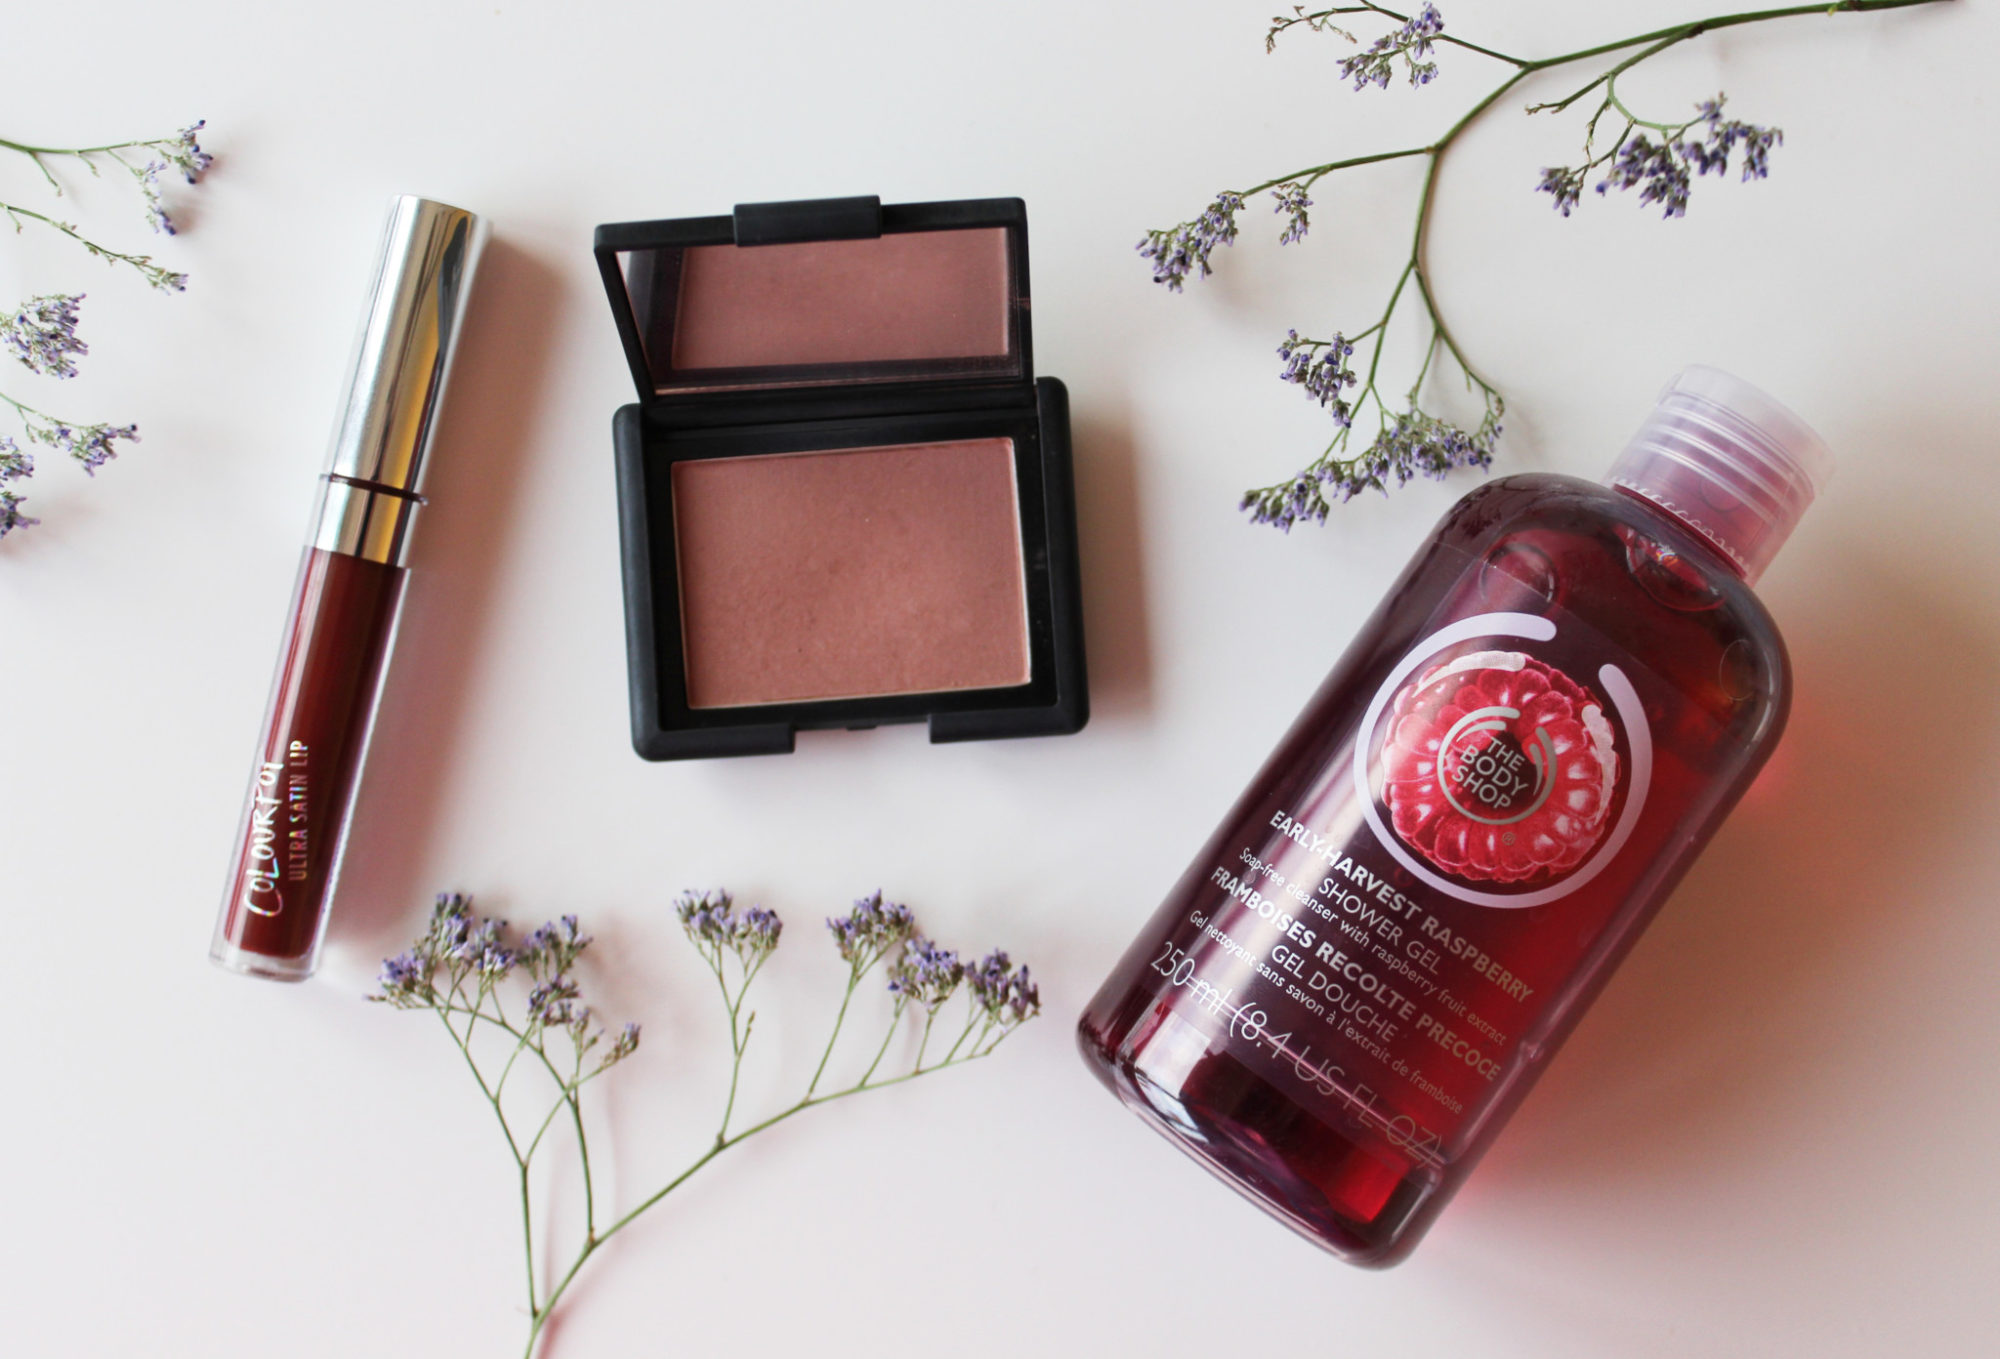 Veckans topp 3 med Colourpop, NARS och The Body Shop